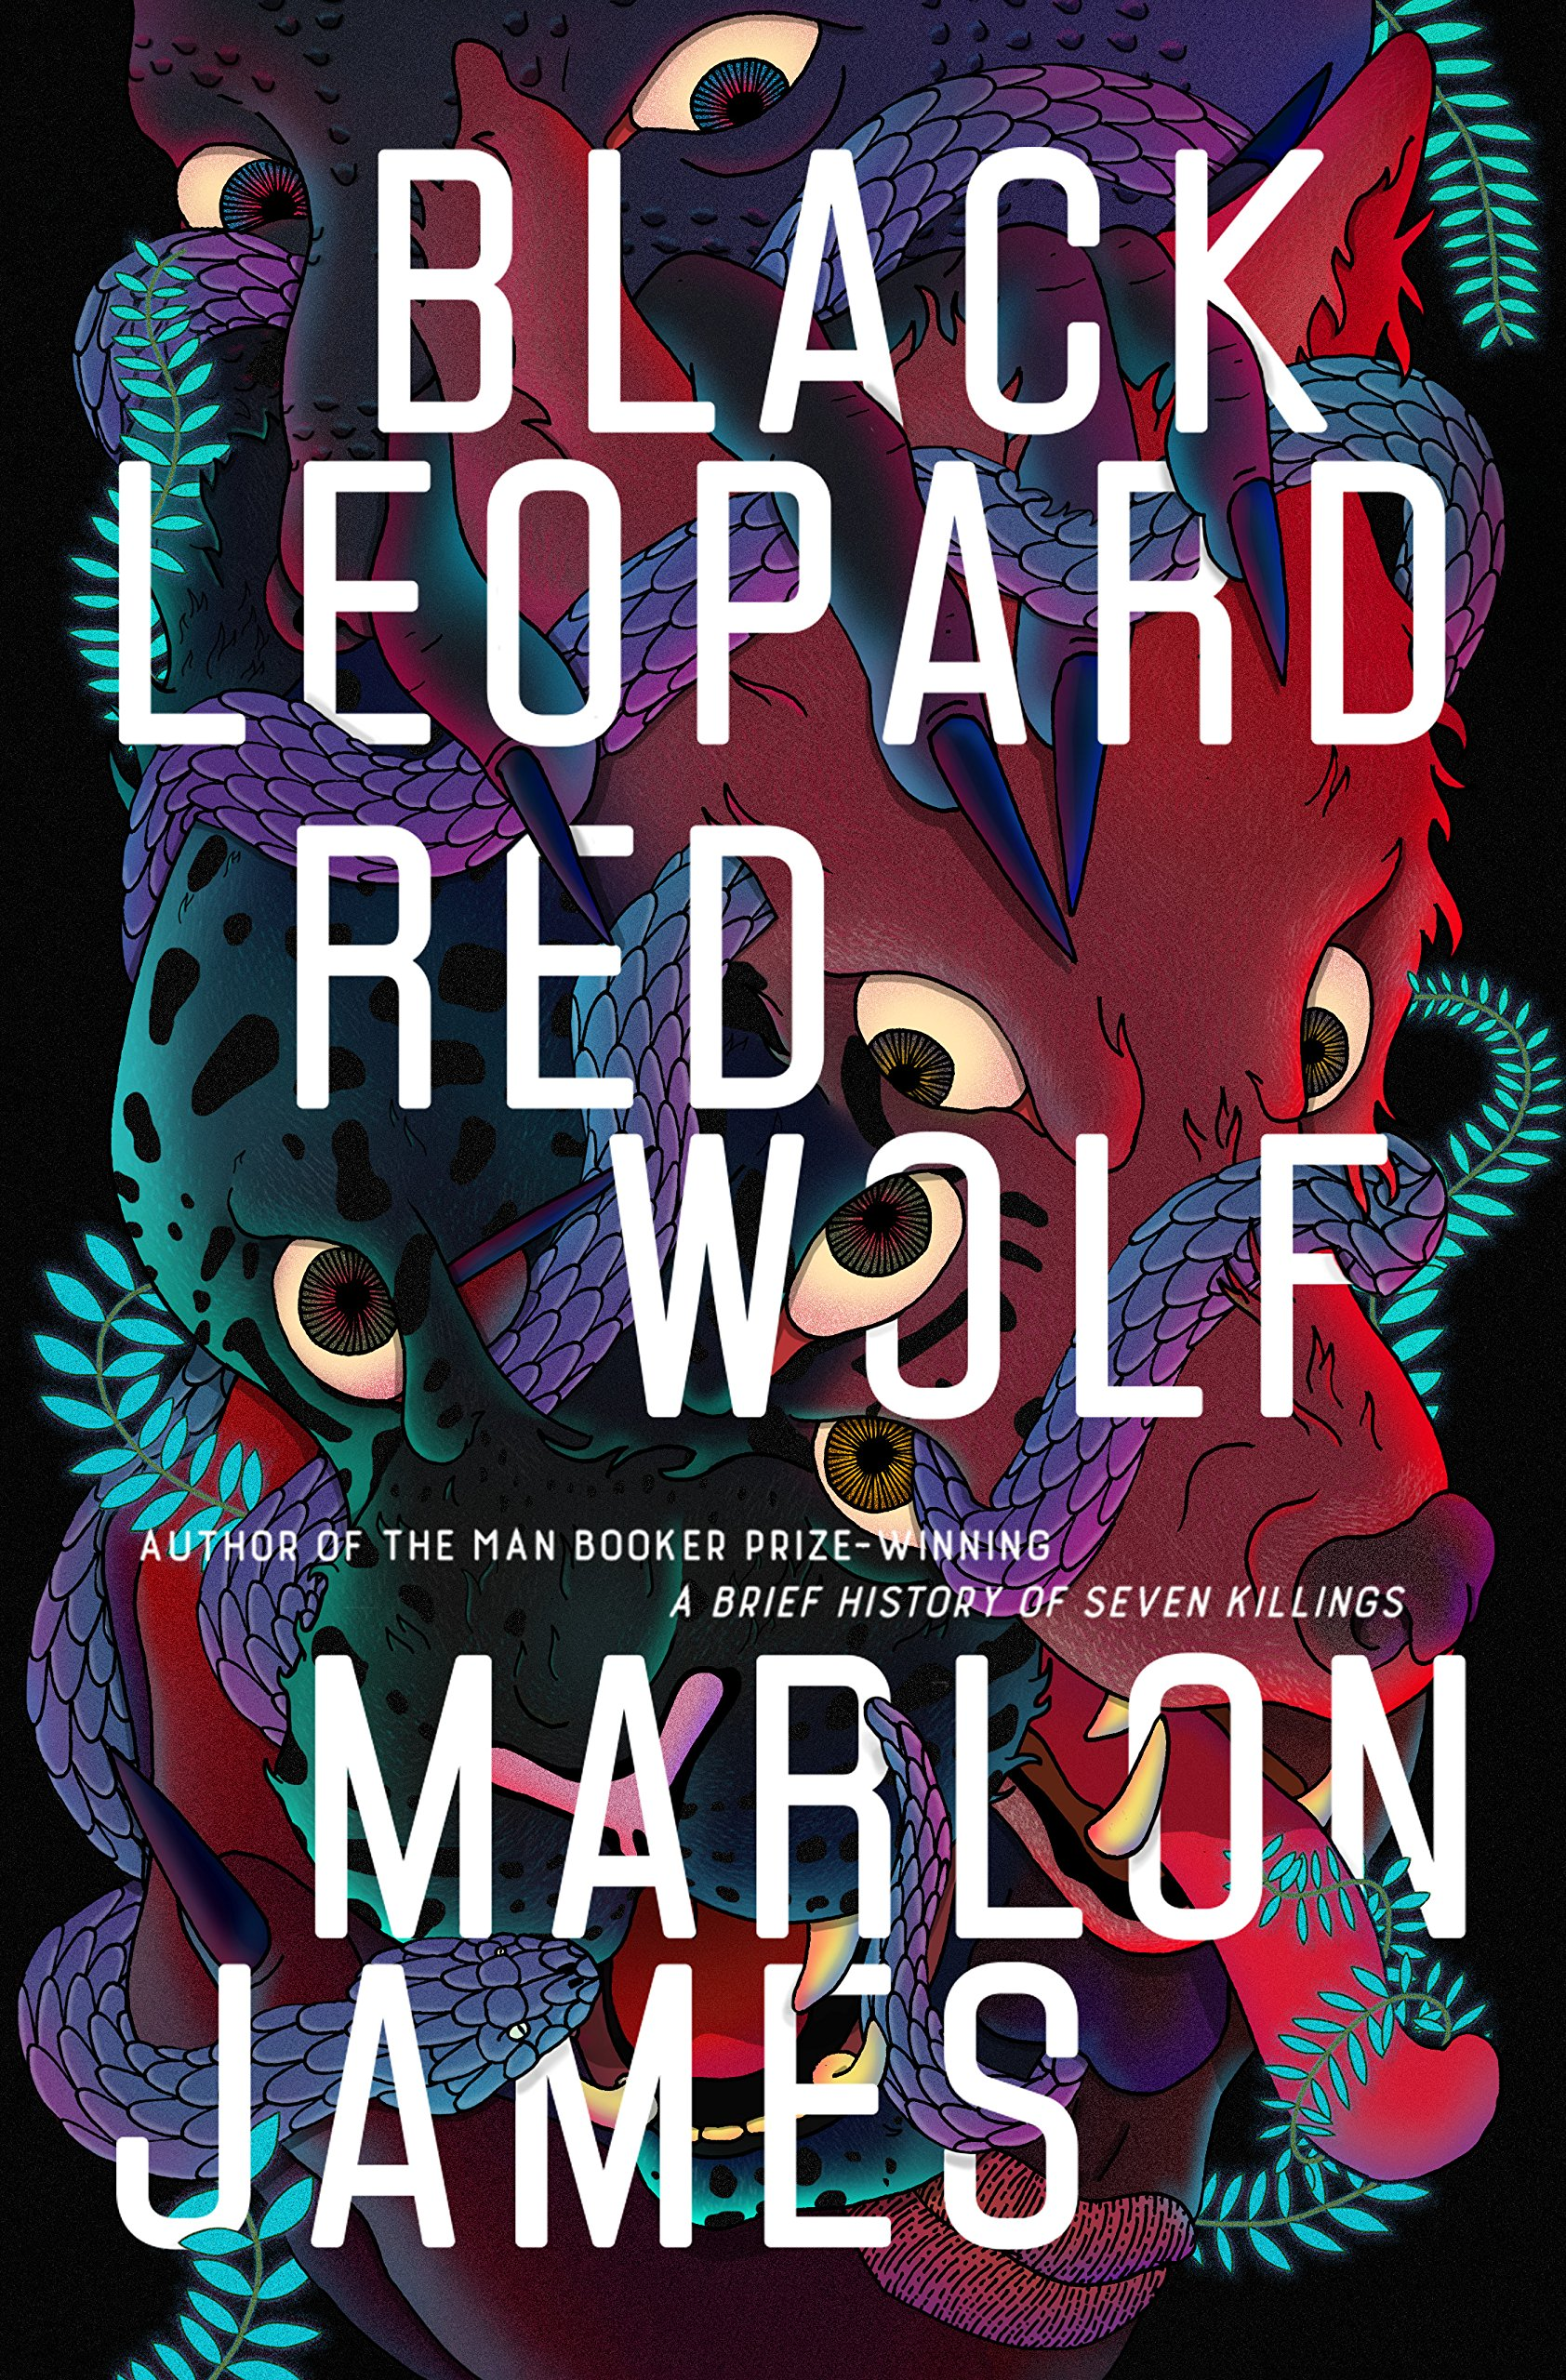 Marlon James Wins The Day, Feb. 6, 2019 | Book Pulse